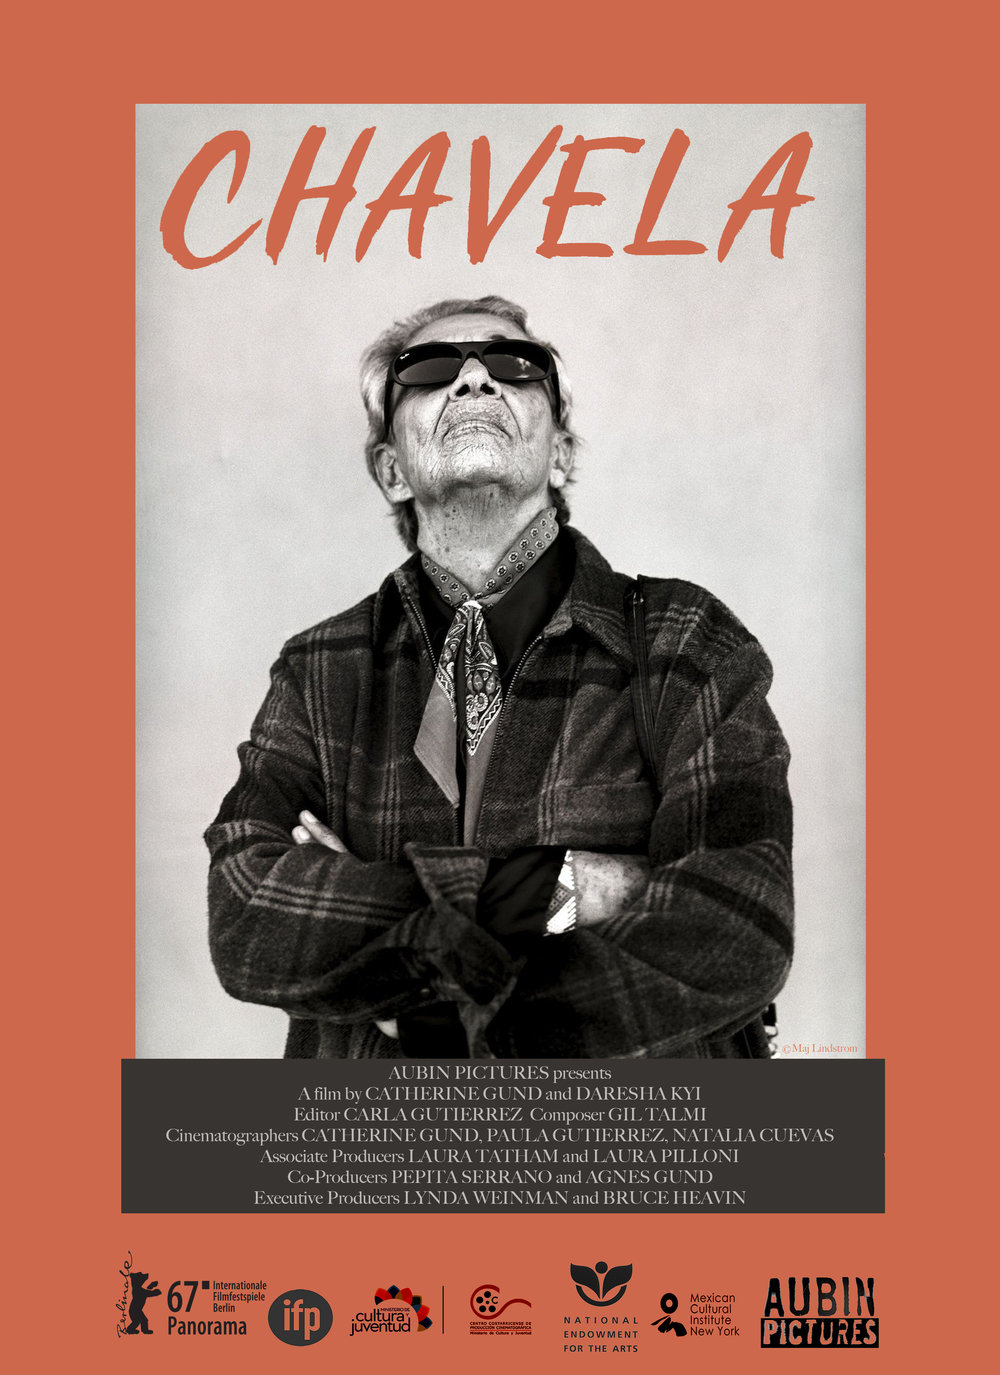 CHAVELA poster,   dimensions 24 x 36, $30   Through its lyrical structure, CHAVELA takes viewers on an evocative, thought-provoking journey through the iconoclastic life of game-changing artist Chavela Vargas. Centered around never-before-seen interview footage of Chavela shot 20 years before her death in 2012, and guided by the stories in Chavela's songs, and the myths and tales others have told about her—as well as those she spread about herself—the film weaves an arresting portrait of a woman who dared to dress, speak, sing, and dream her unique life into being. Learn more:  chavelavargasfilm.com .  Ships via USPS in 2 to 9 business days.